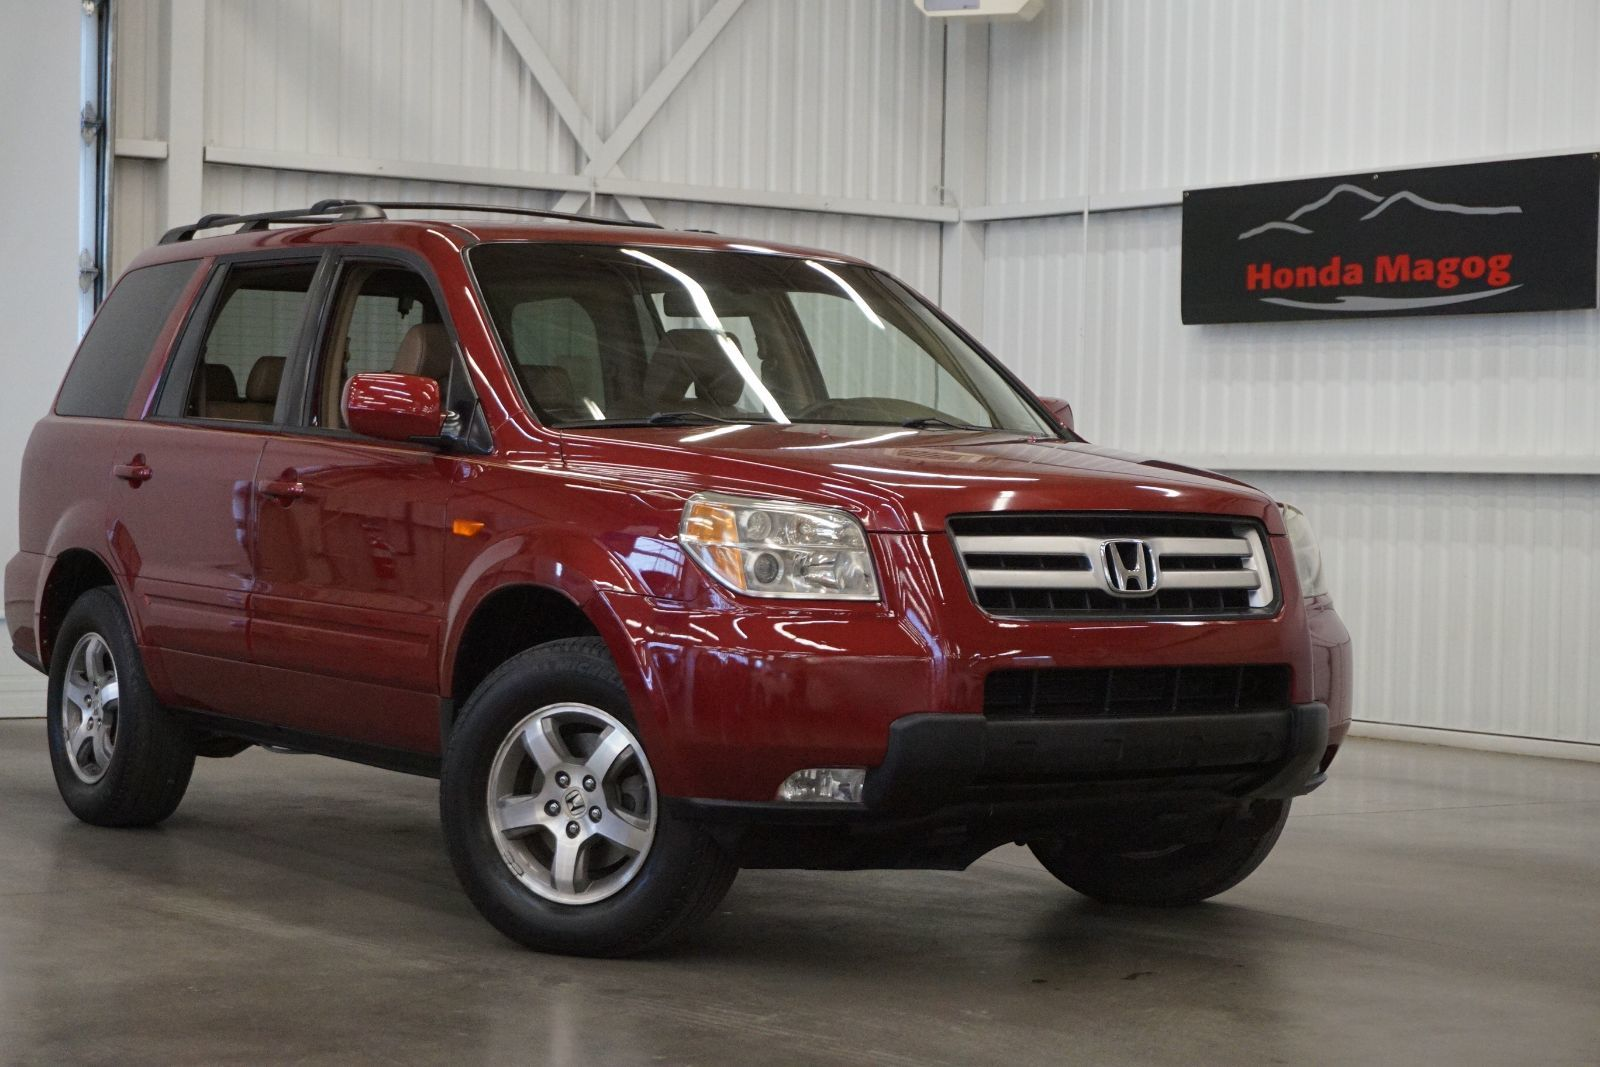 Pre Owned 2006 Honda Pilot Ex L 2 Rm Faites Une Offre In Magog Oil Pressure Switch Location Free Engine Image Inventory Quebec